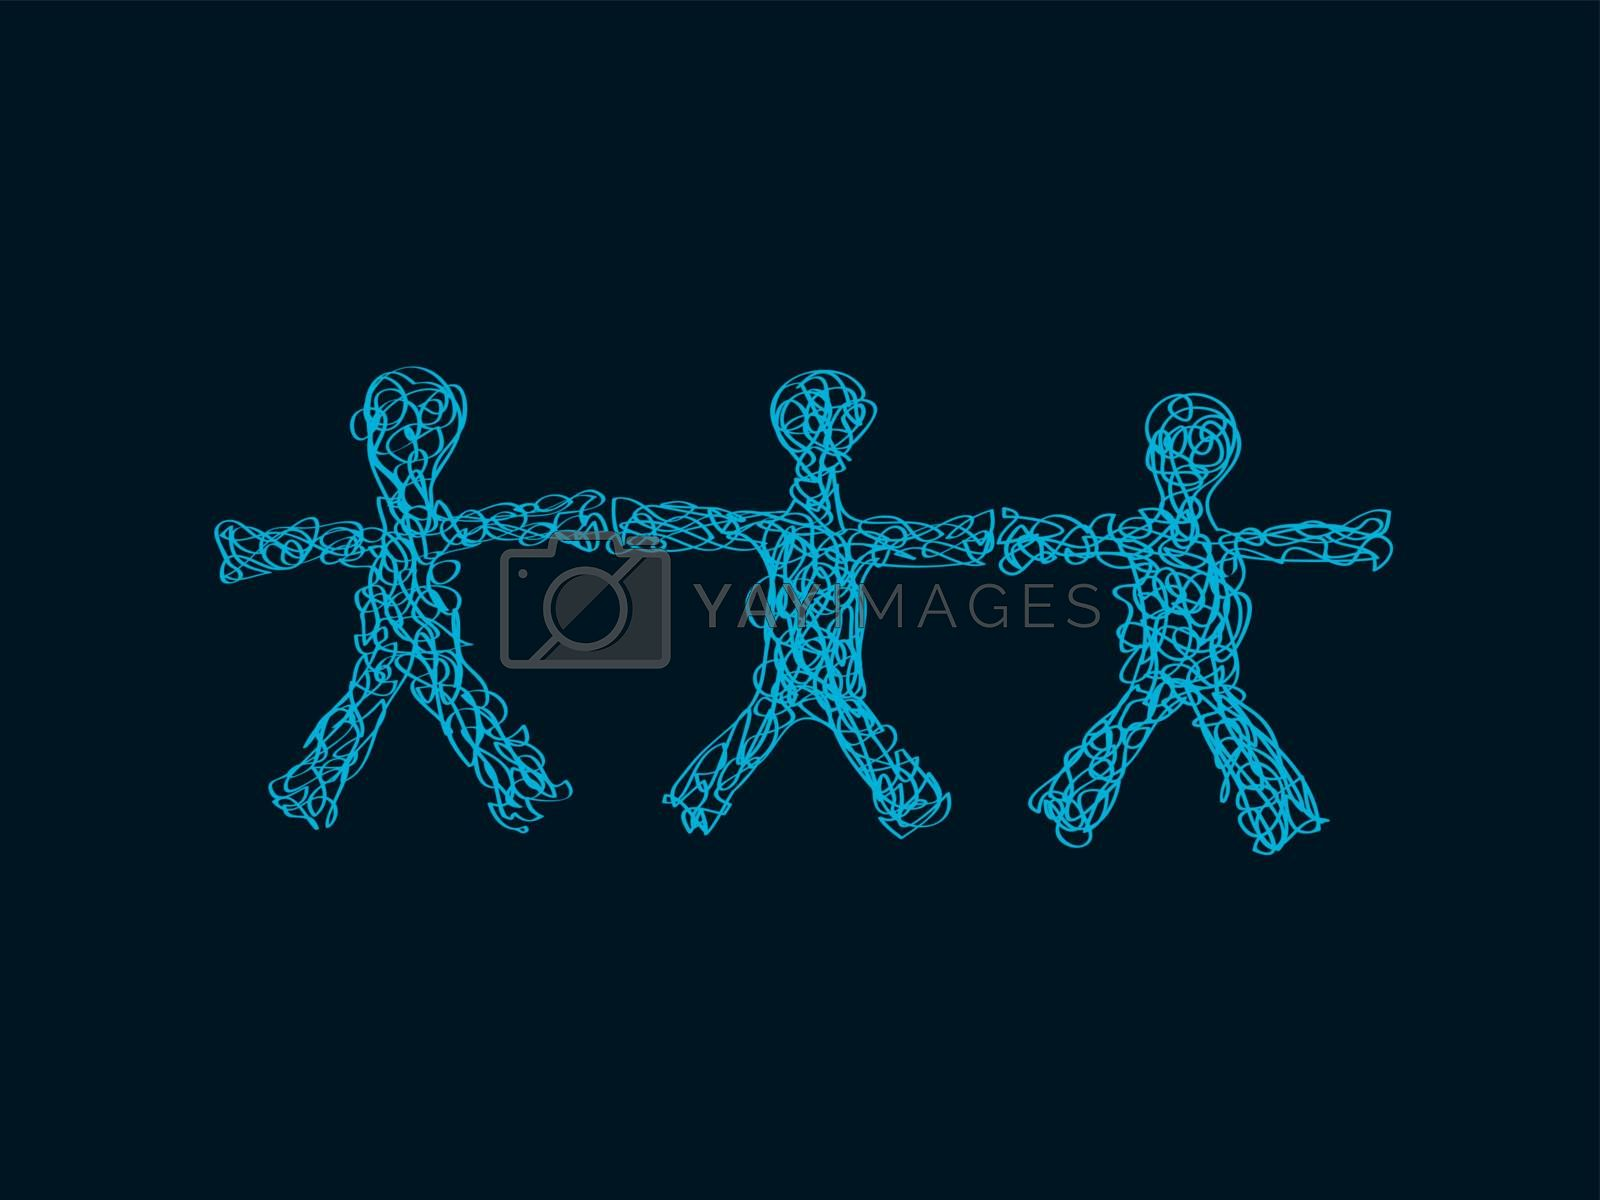 Freehand Hand Drawn Silhouettes of Three People With Open Arms Holding Hands